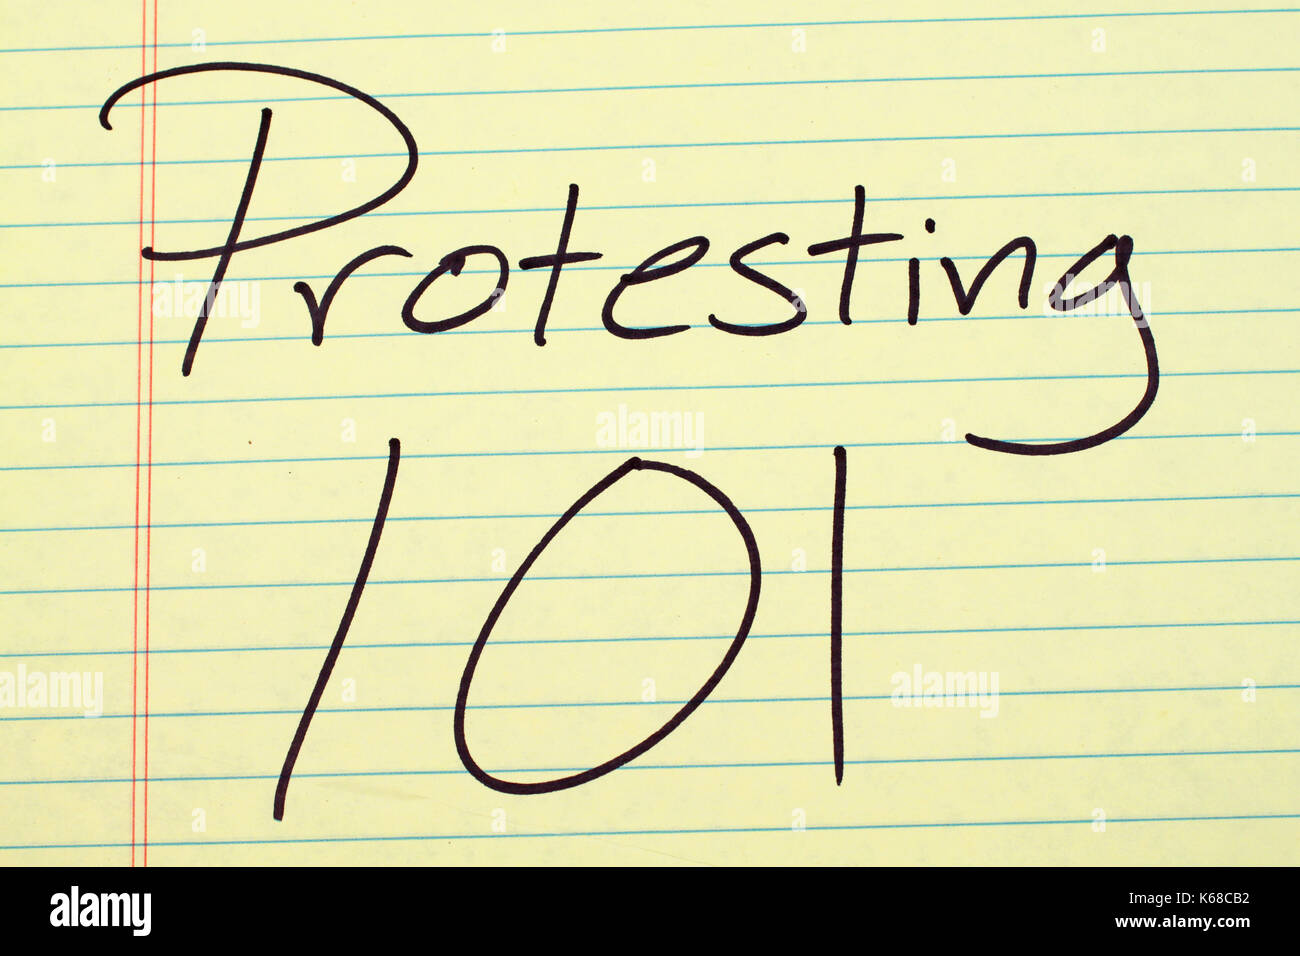 The words 'Protesting 101' on a yellow legal pad - Stock Image